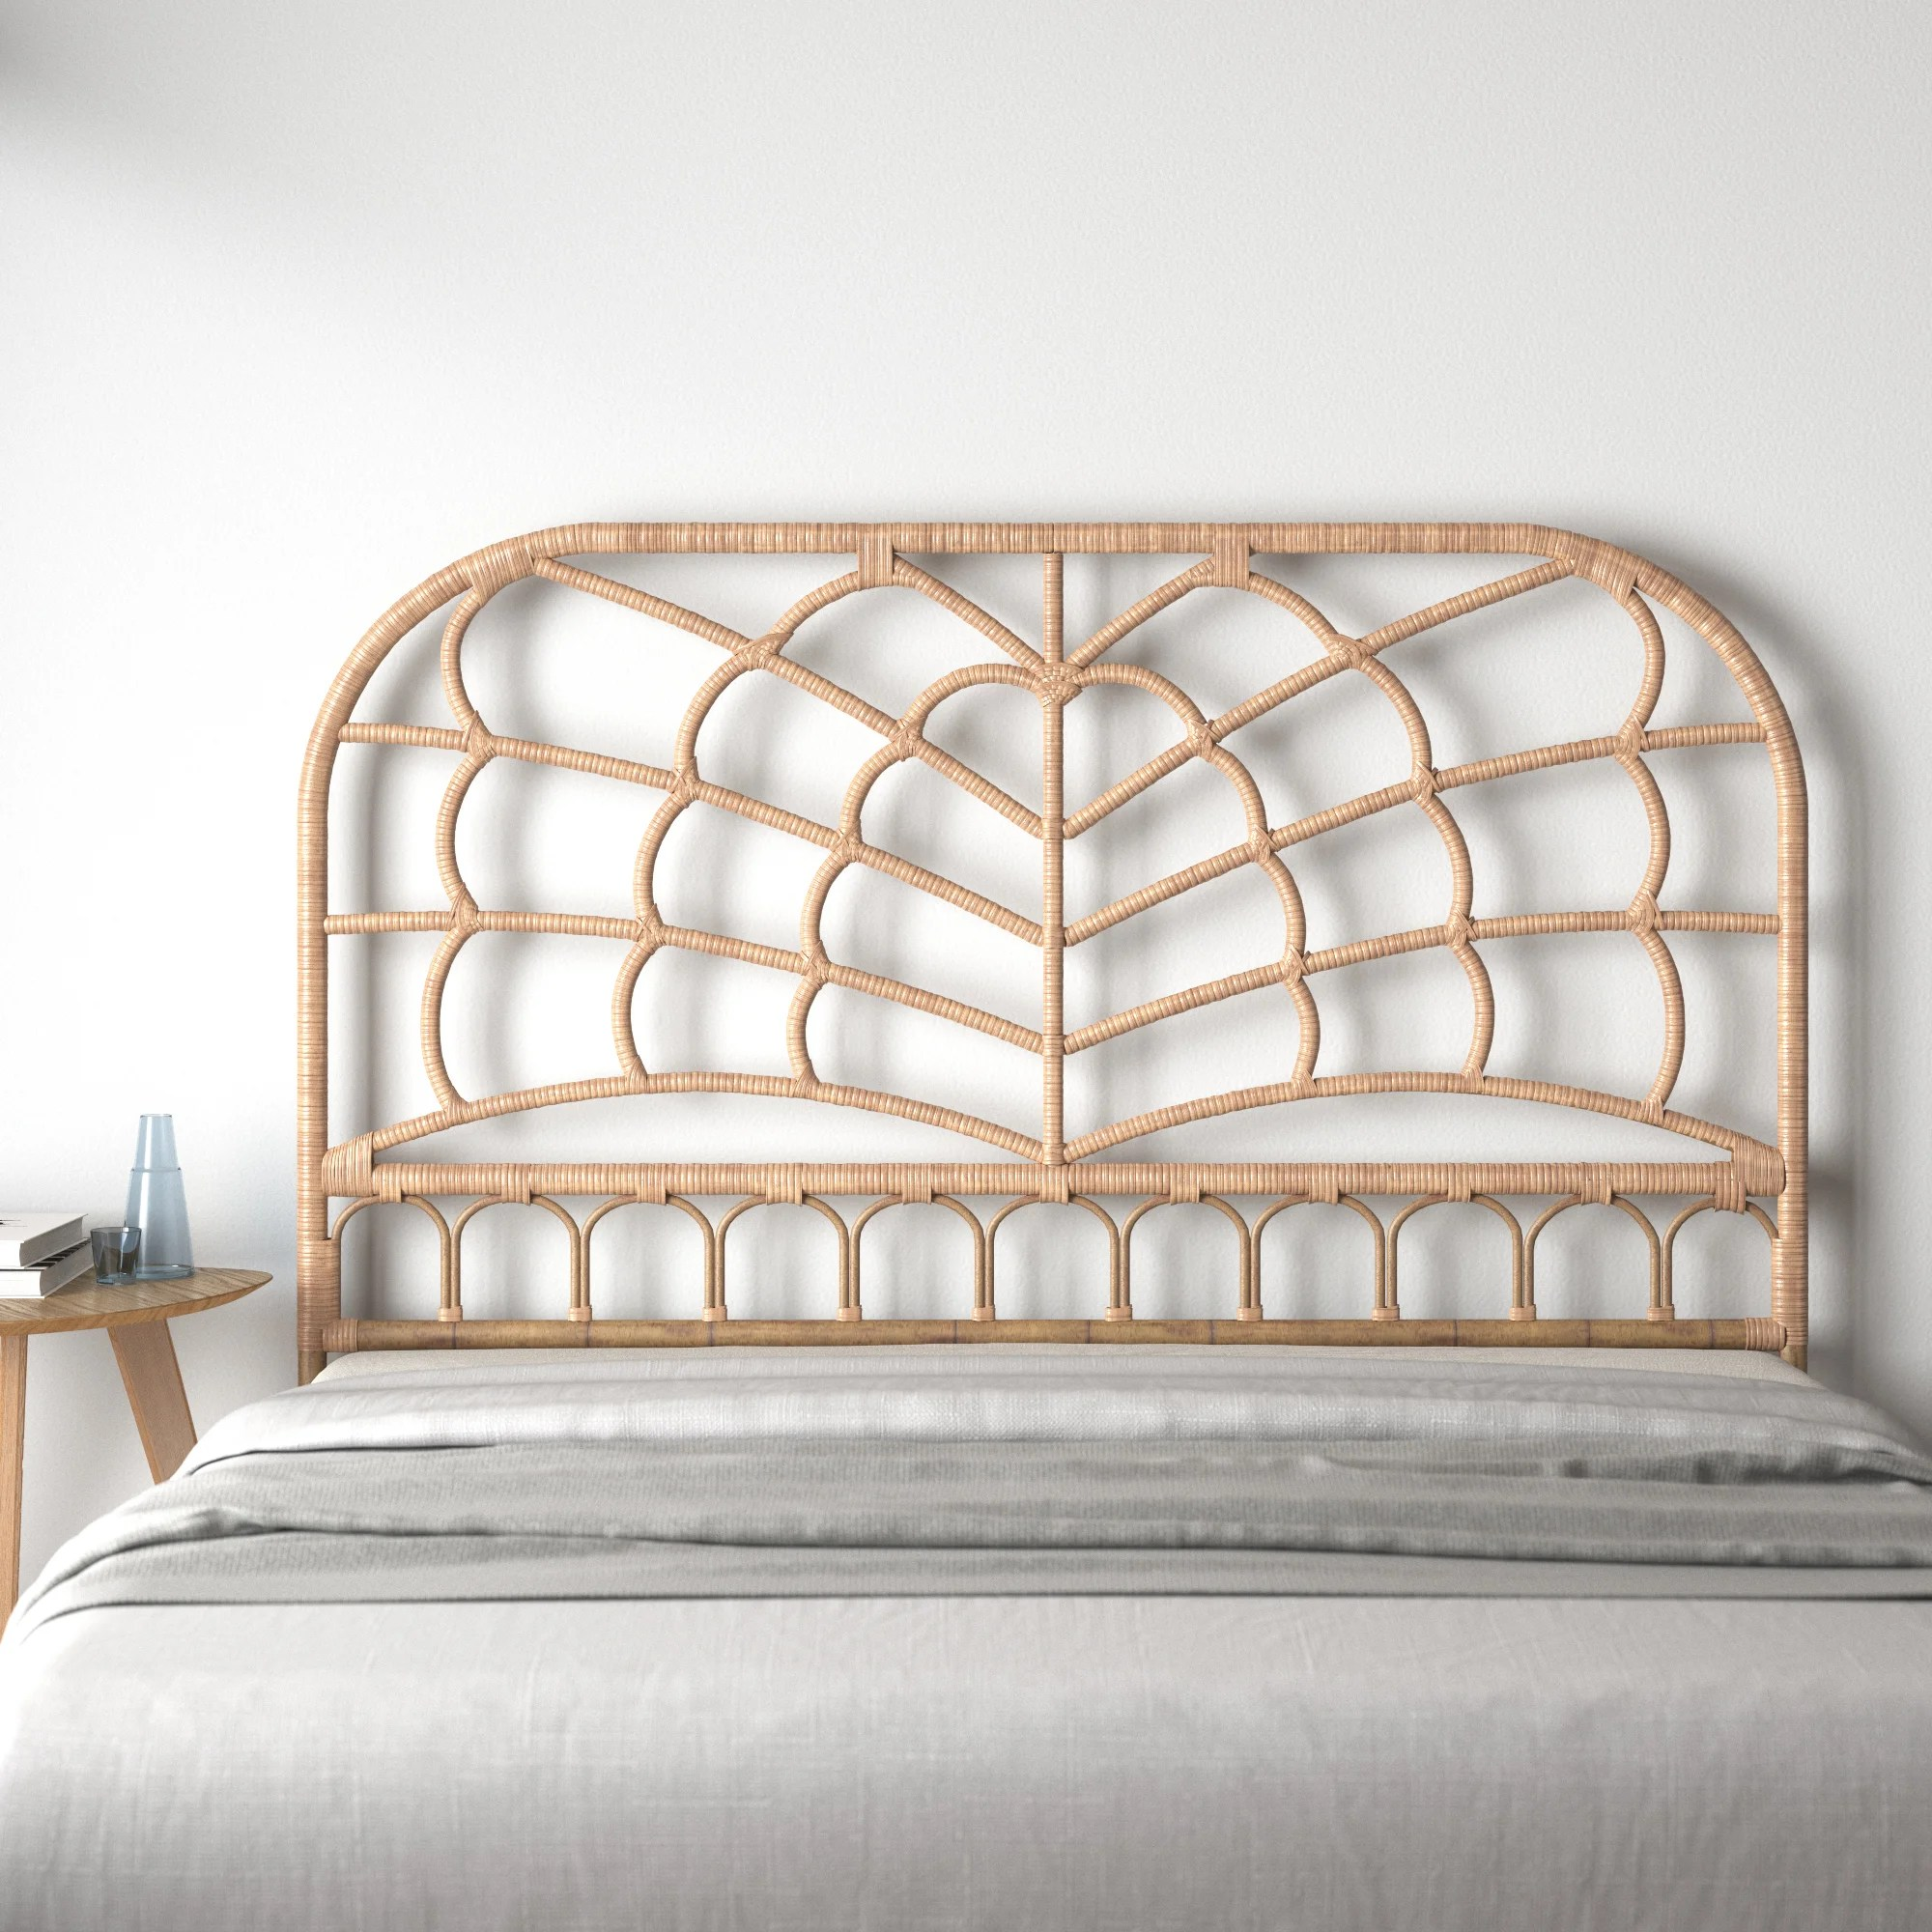 Furniture Home Living Vintage White Wash Light Tan Round Top Wicker Full Double Queen Bed Headboard Woven Rattan Wood 60 X 51 Bedroom Furniture Beach House Big